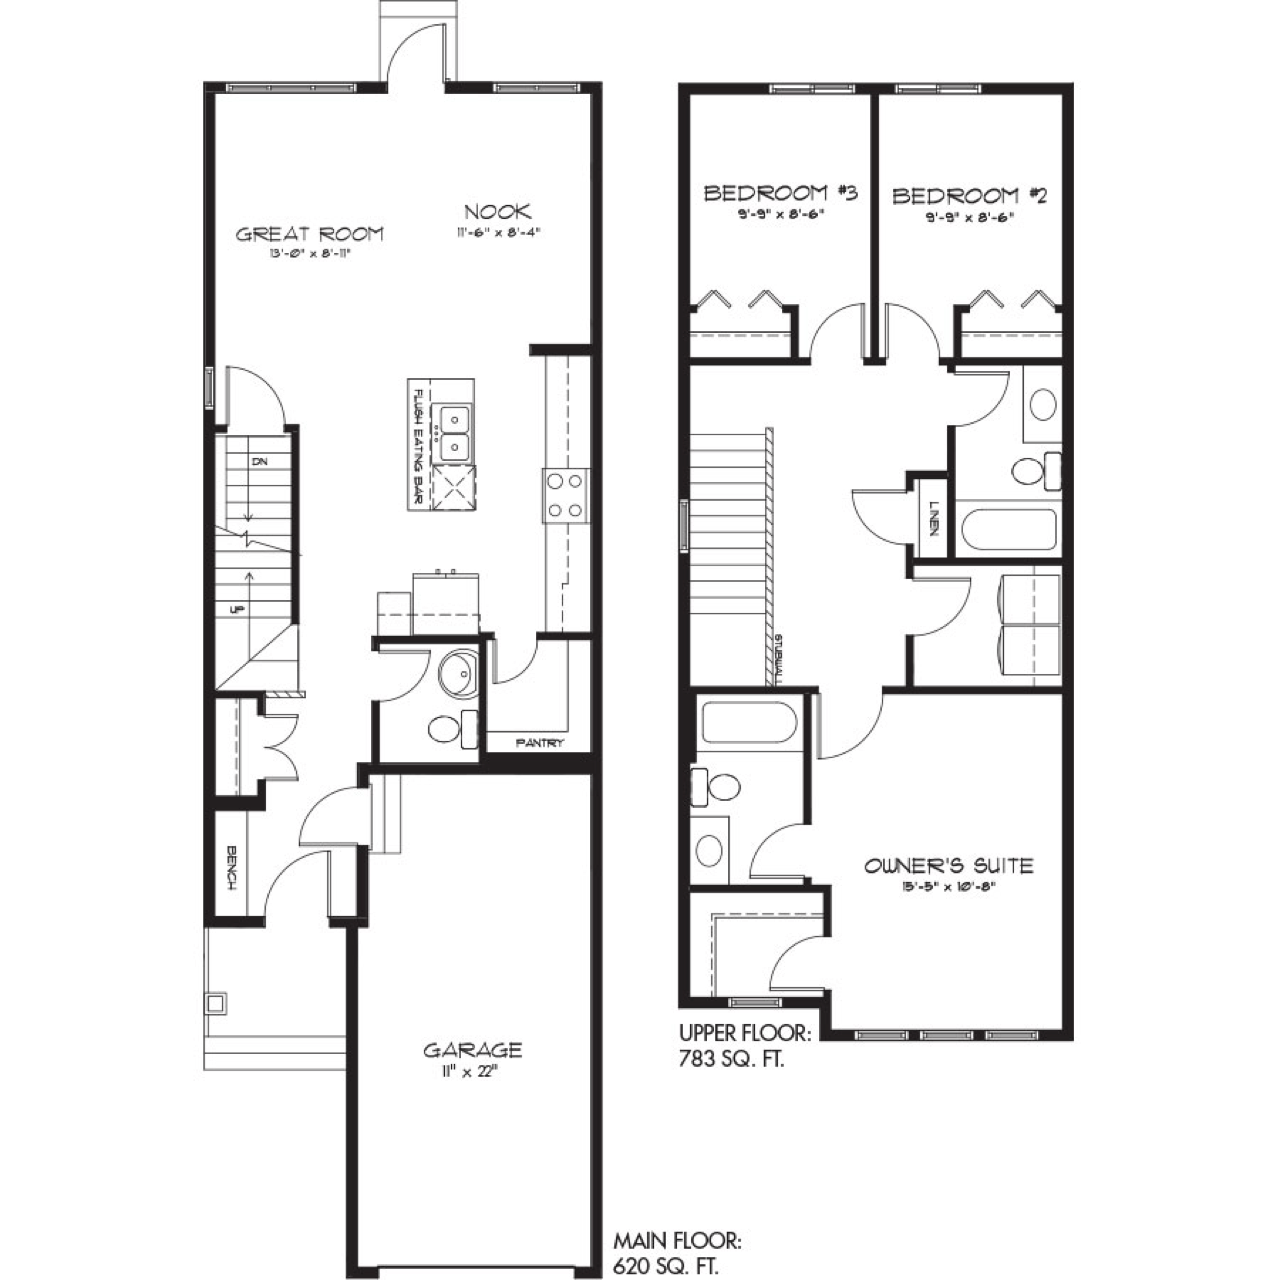 New Townhome Model Churchill Floorplan Image